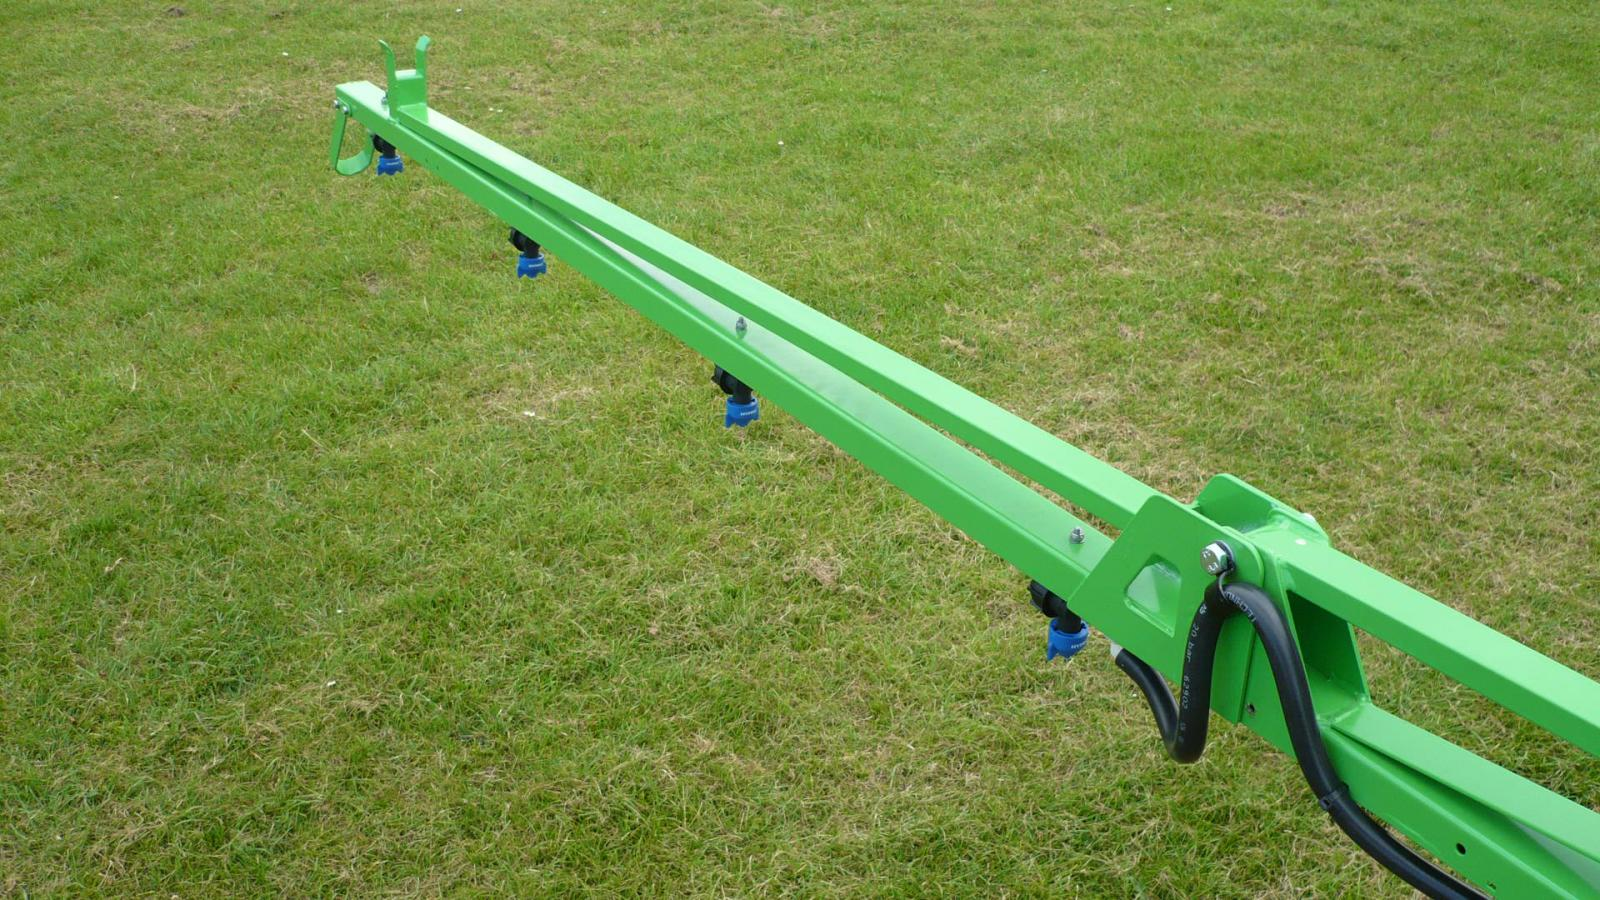 Both the STARGREEN AS300Pro and AS400Pro have 6 metre, high quality manual fold booms with a positive break back action and open position